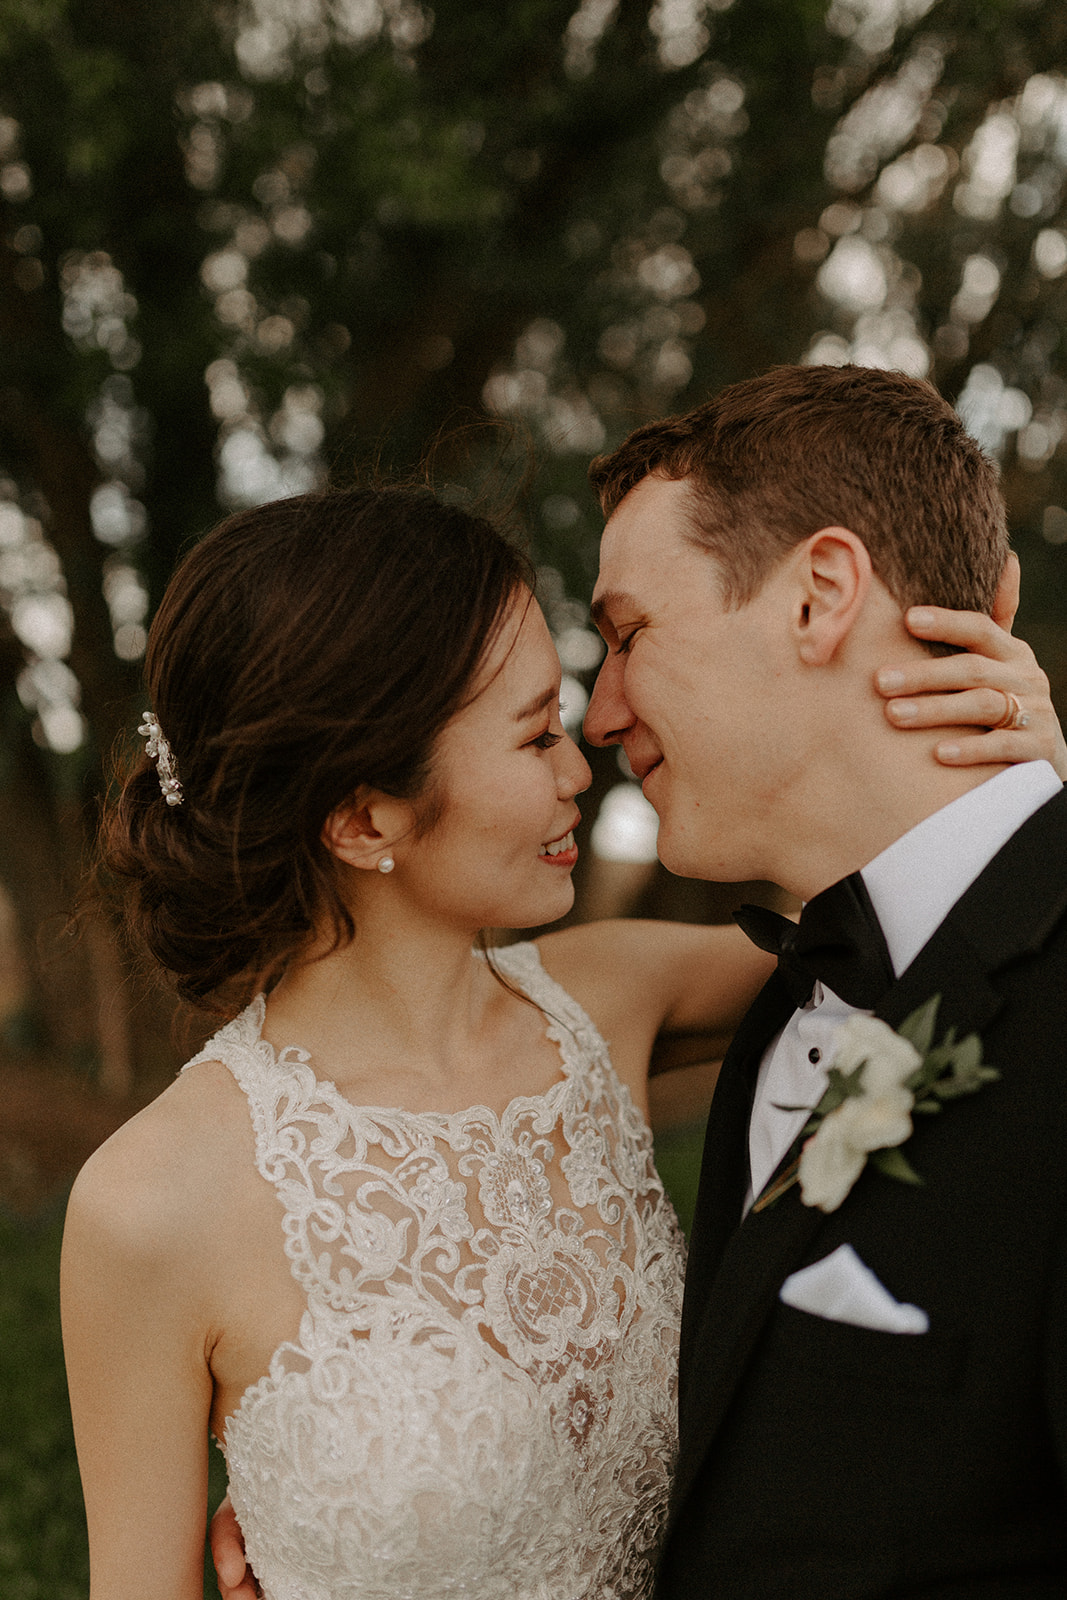 pear_tree_estate_wedding_photographer_champaign_chicago_illinois_midwest_wright_photographs_0553.jpg